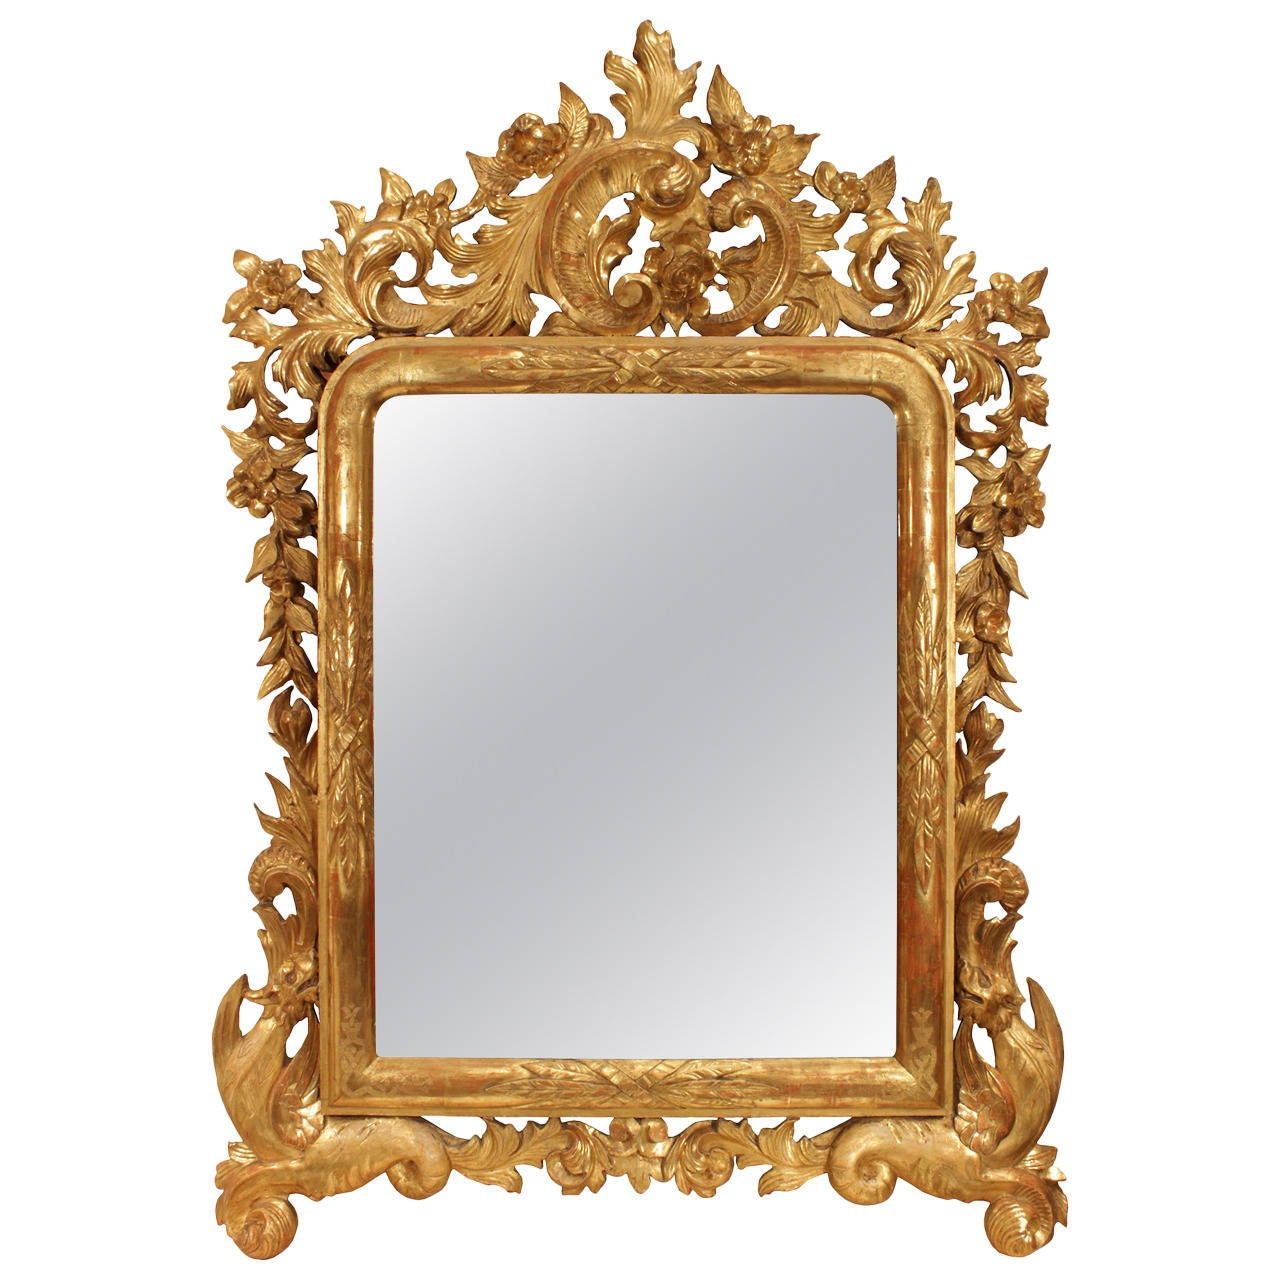 Italian Early 19th Century Giltwood Mirror with Original Mirror Plate